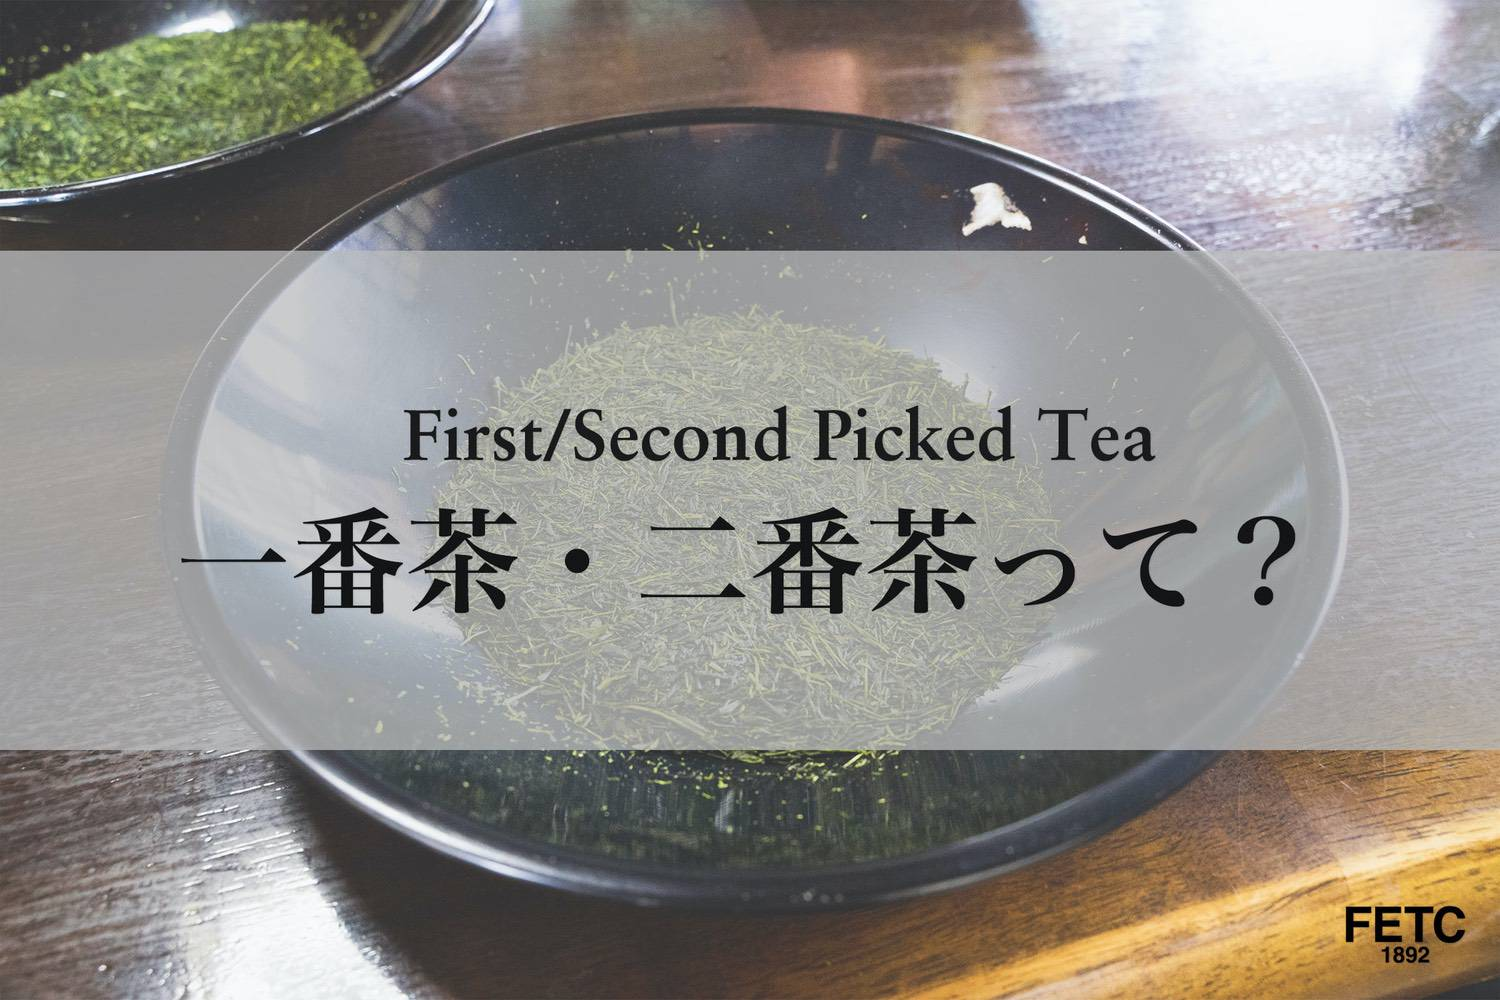 First/Second Picked Tea